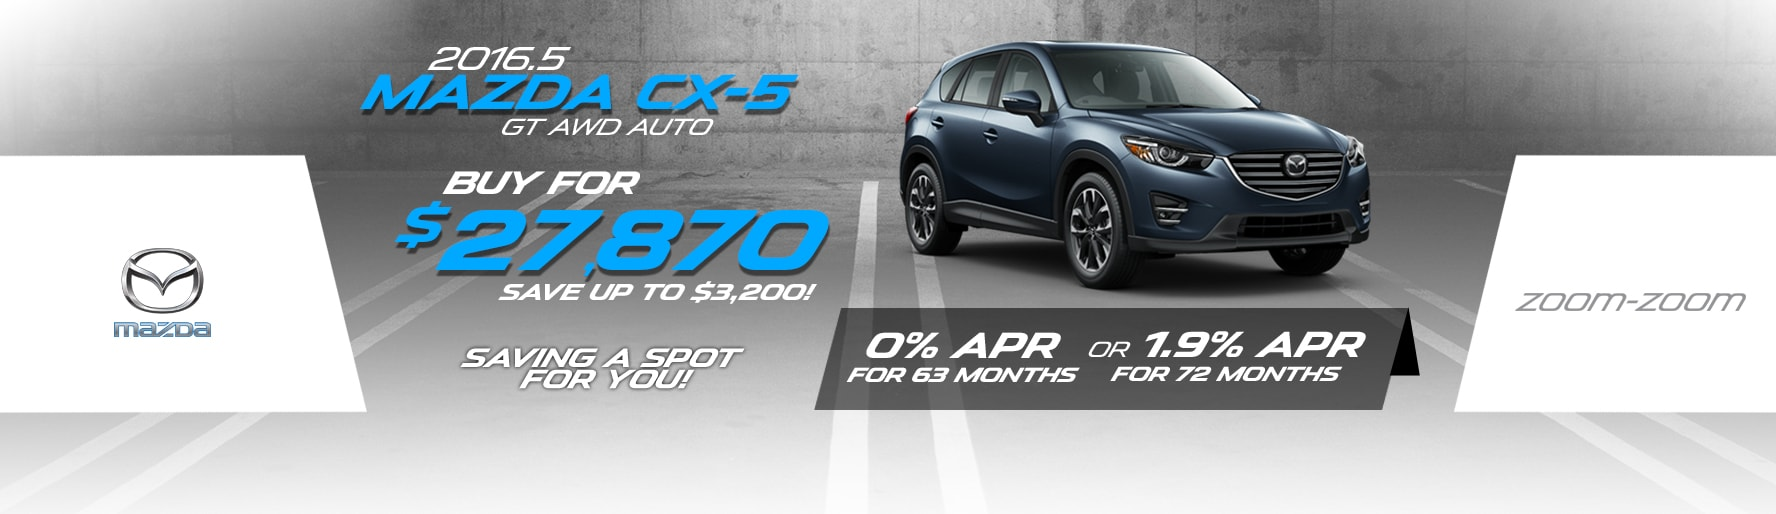 2016.5 Mazda CX-5 GT AWD Auto Lease Special at Liberty Mazda